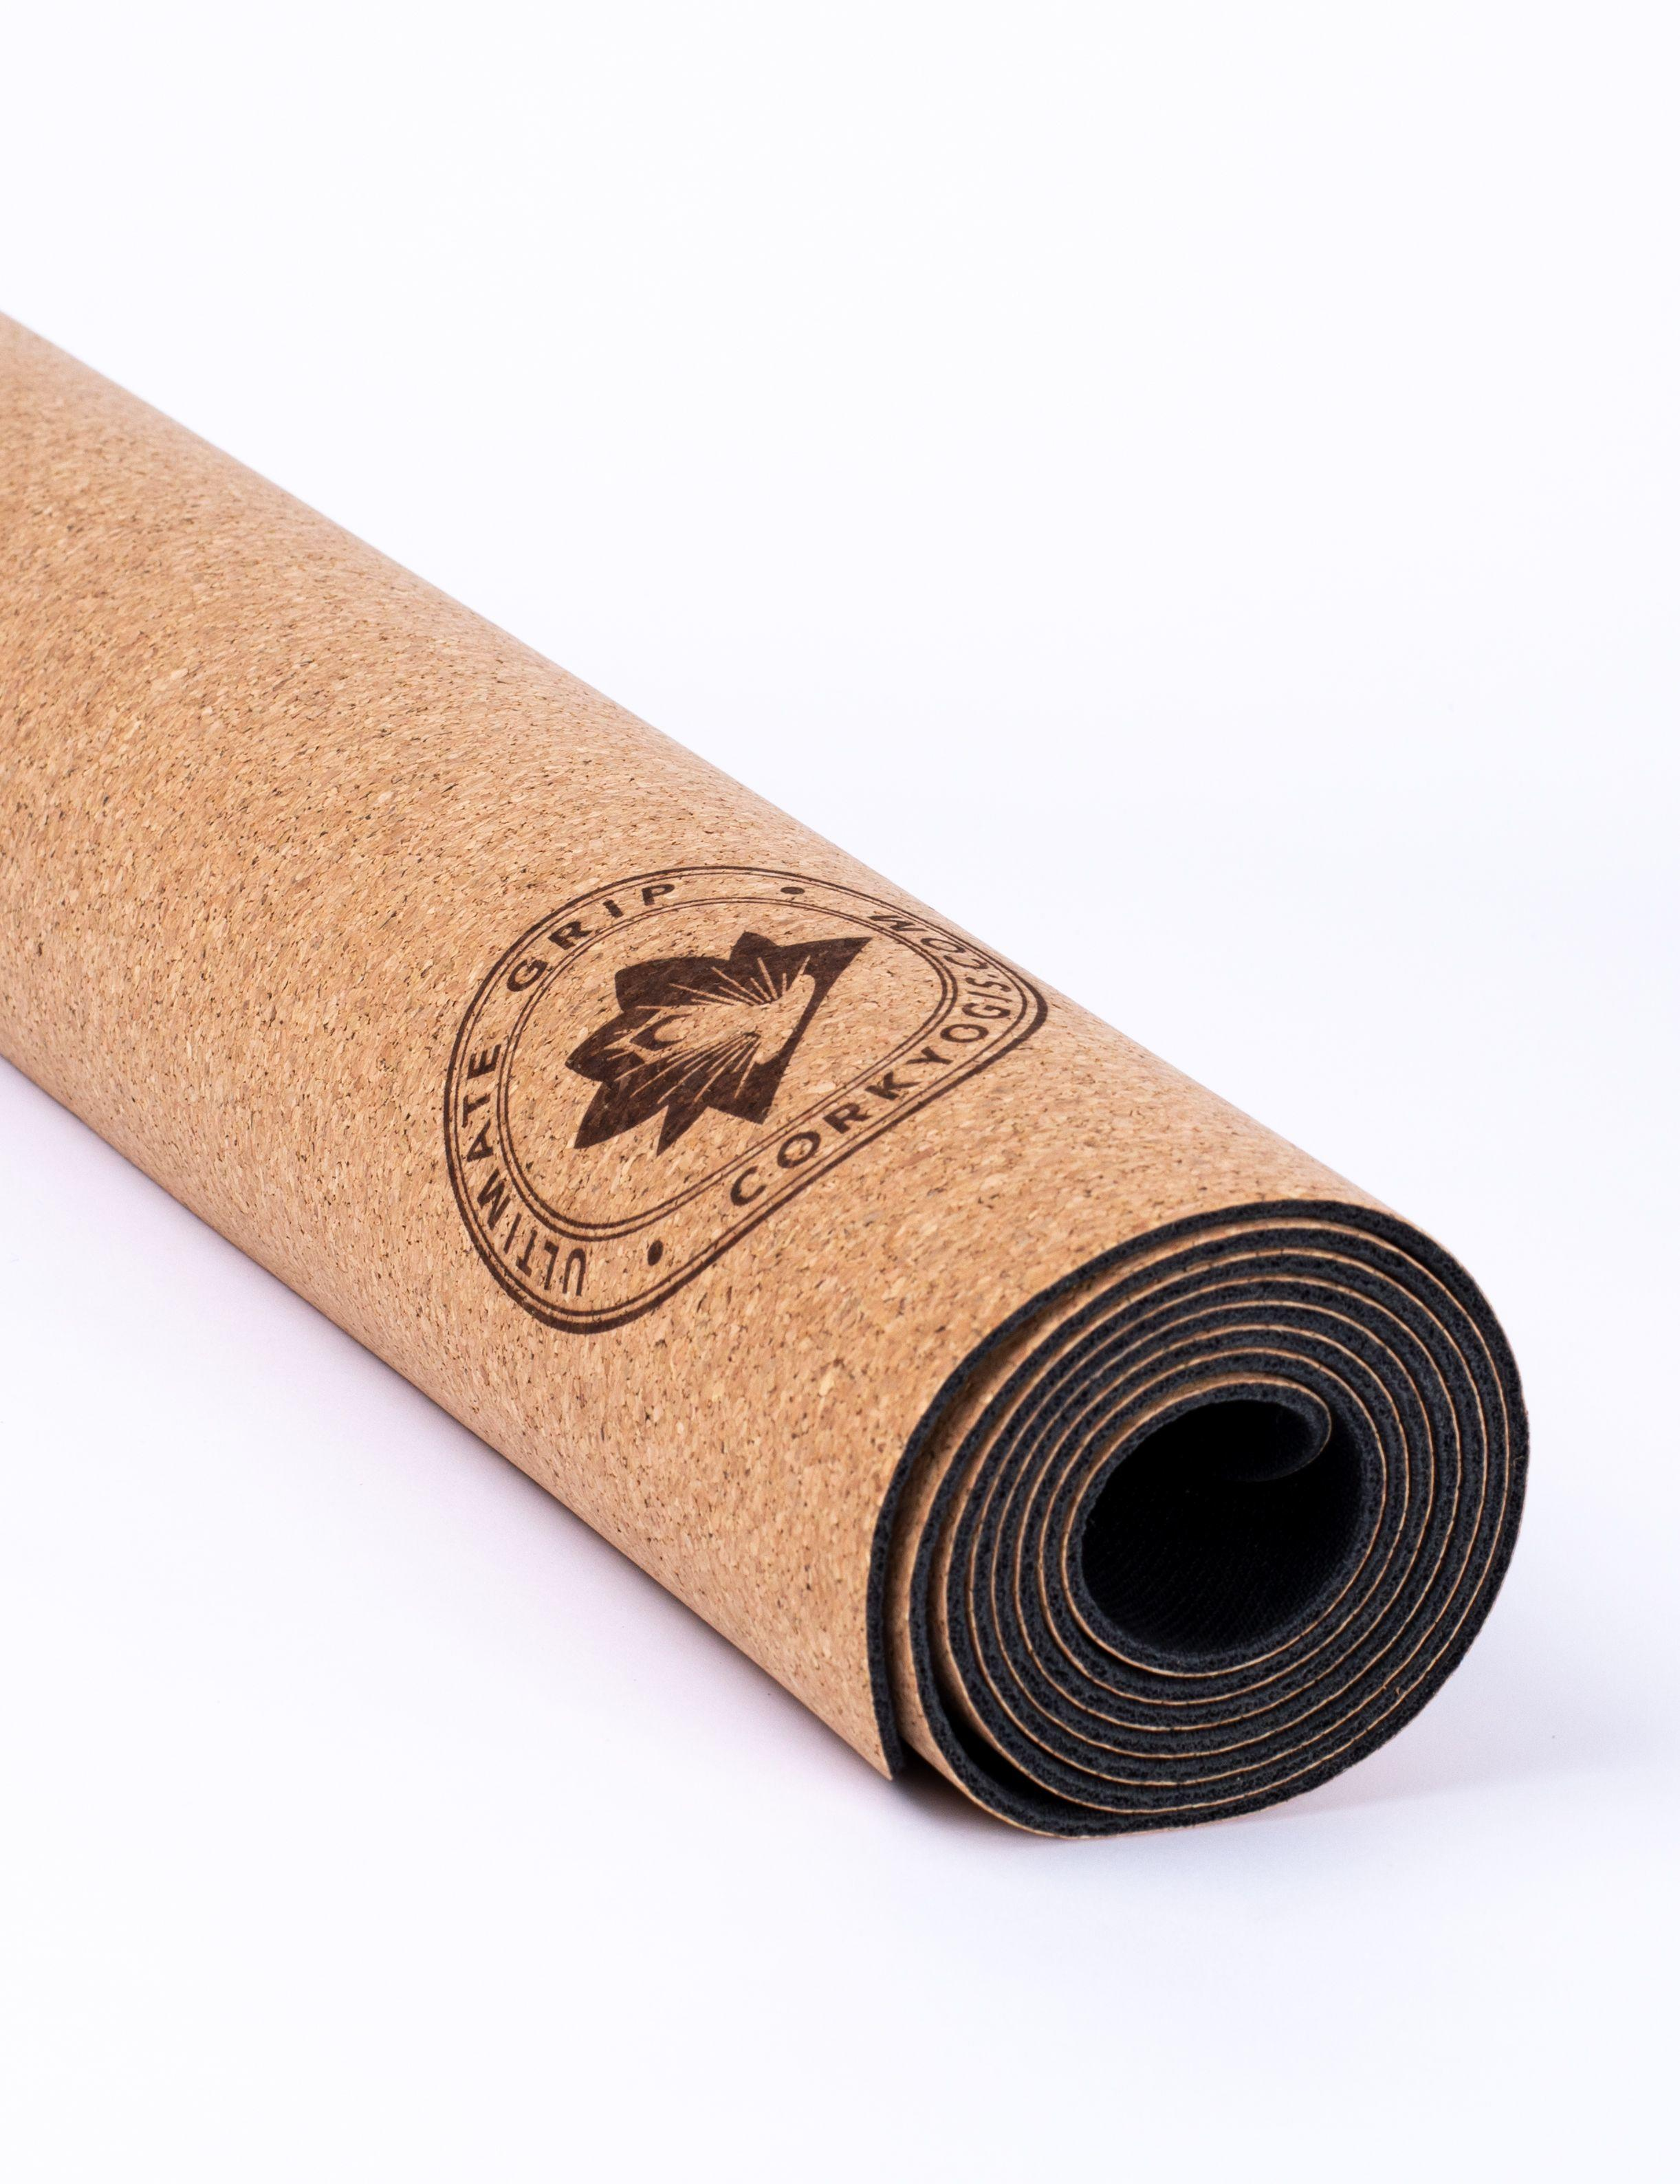 Best cork yoga mat vegan